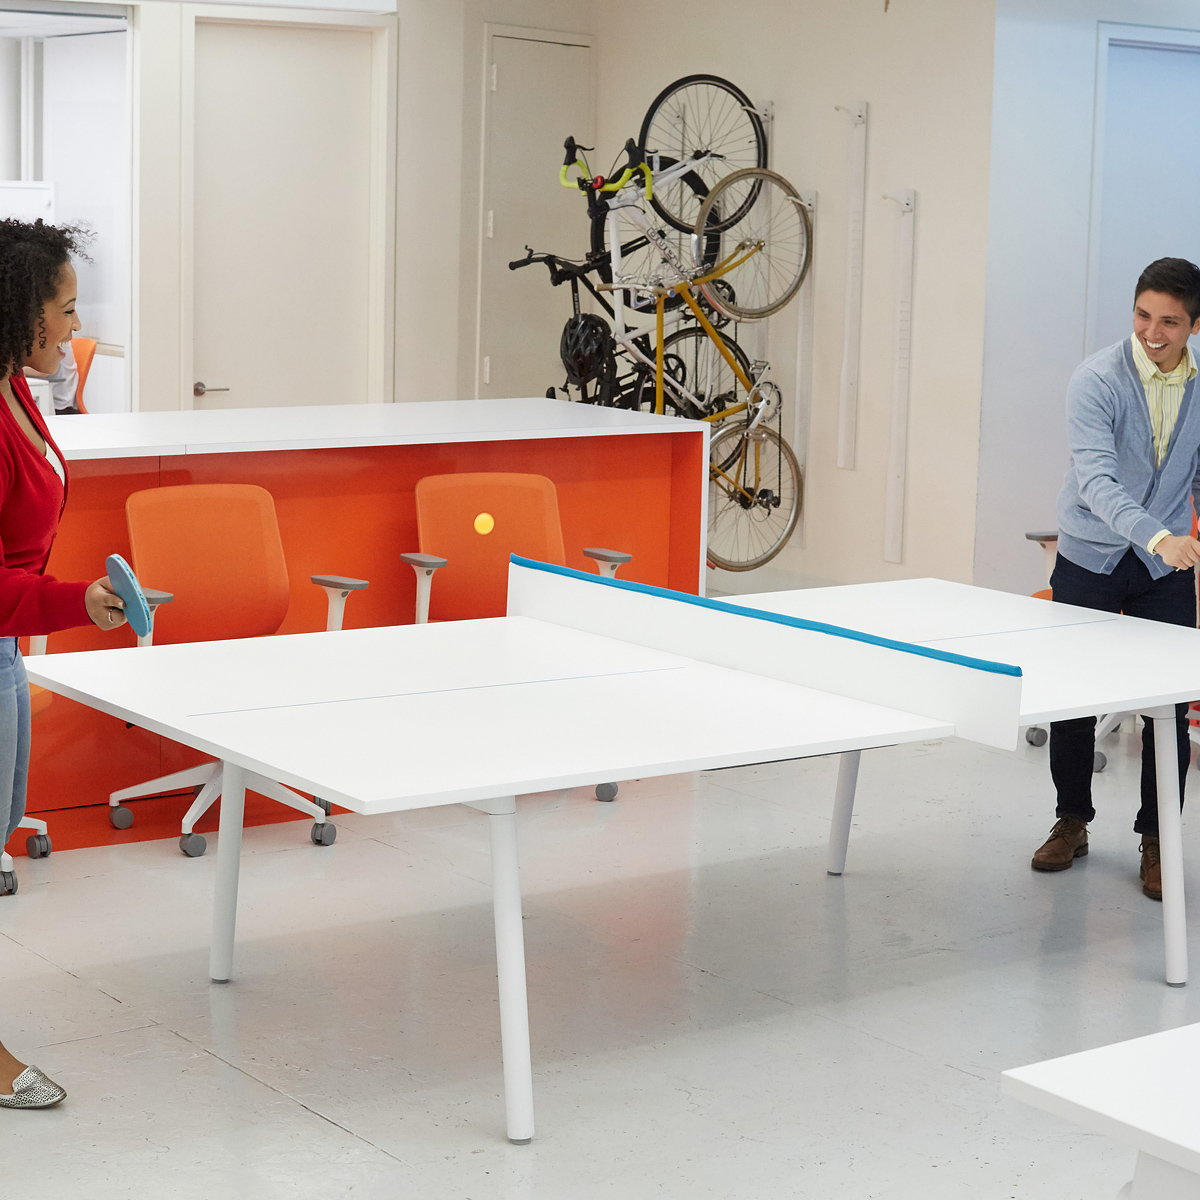 Hannah Sweet and her gf have lesbian sex on top of a ping pong table № 374371 бесплатно